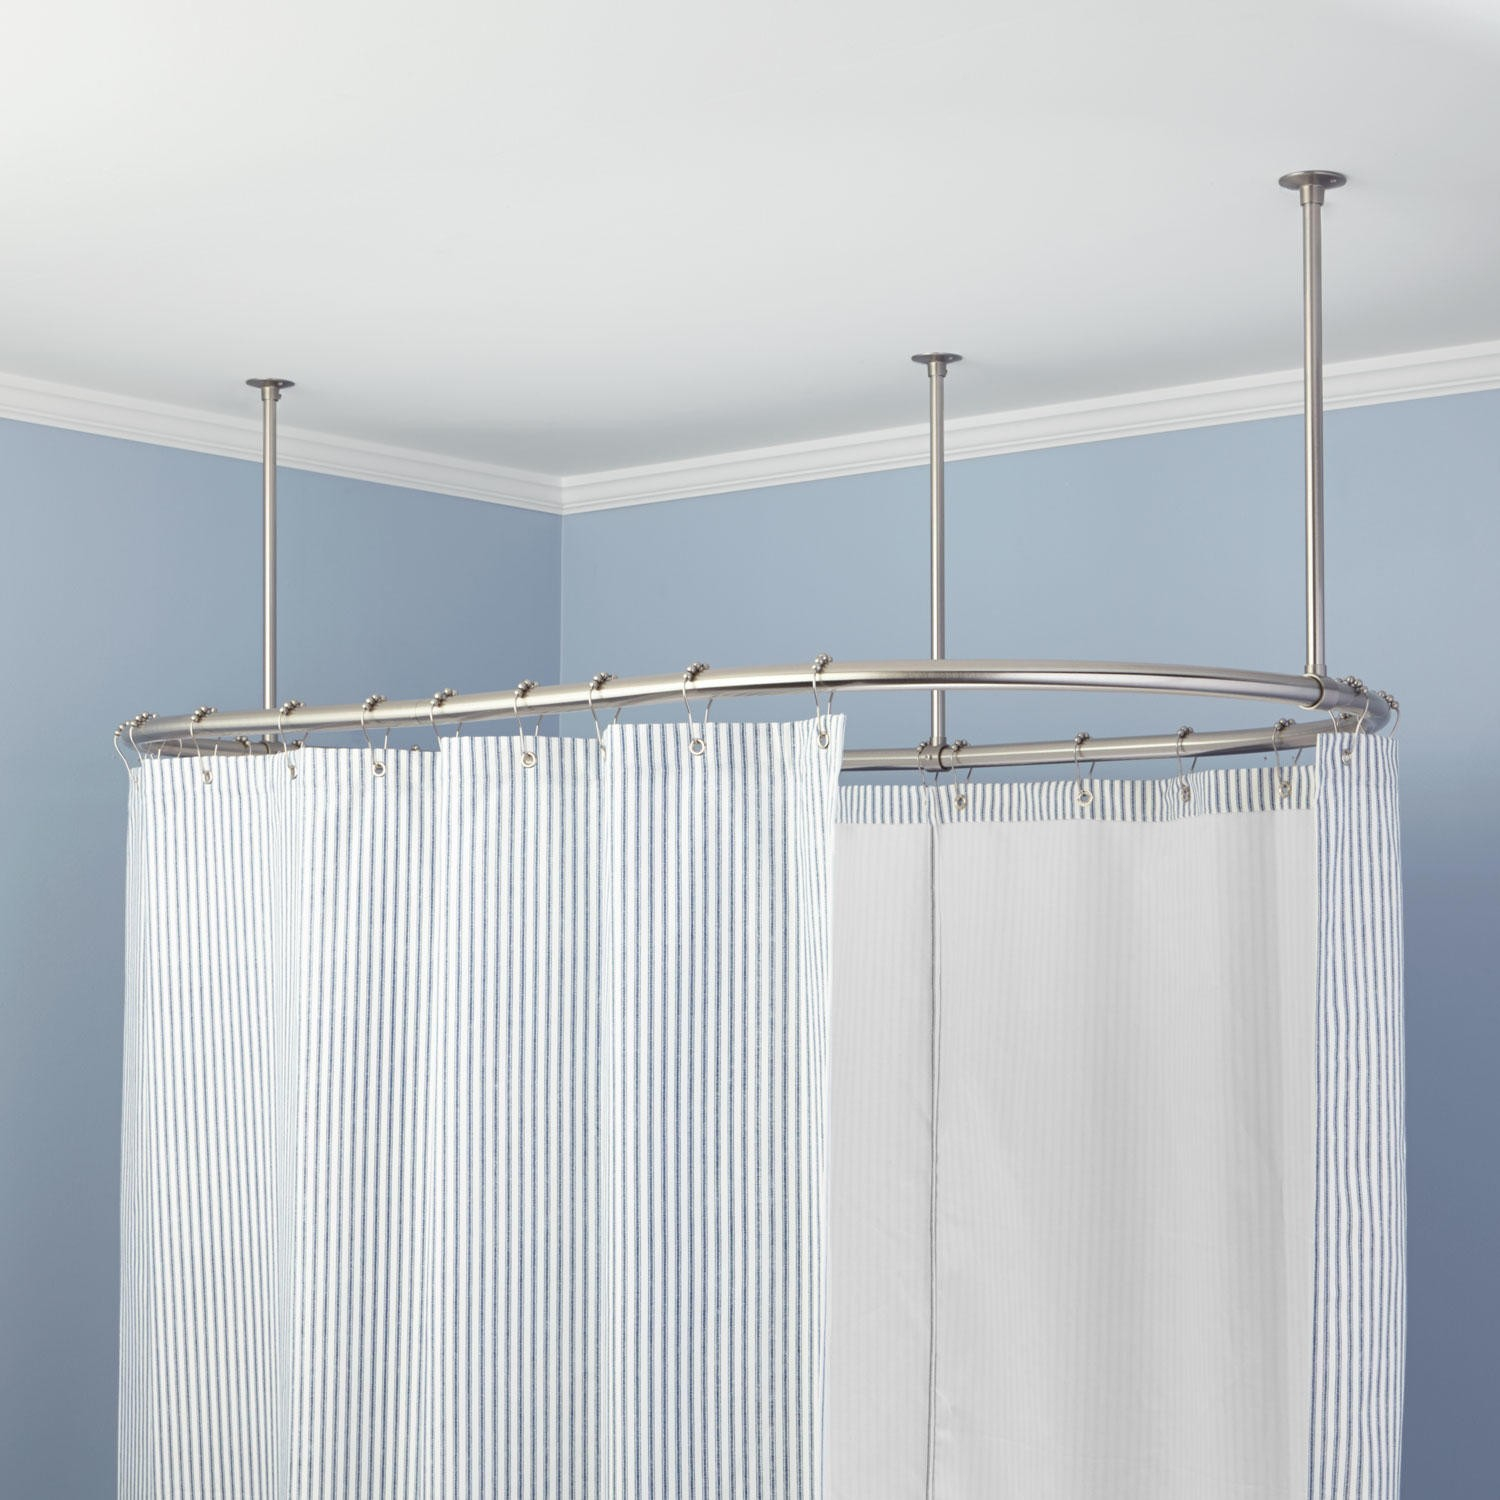 Impressive Design Shower Curtain Rod Oval Solid Brass Shower regarding measurements 1500 X 1500